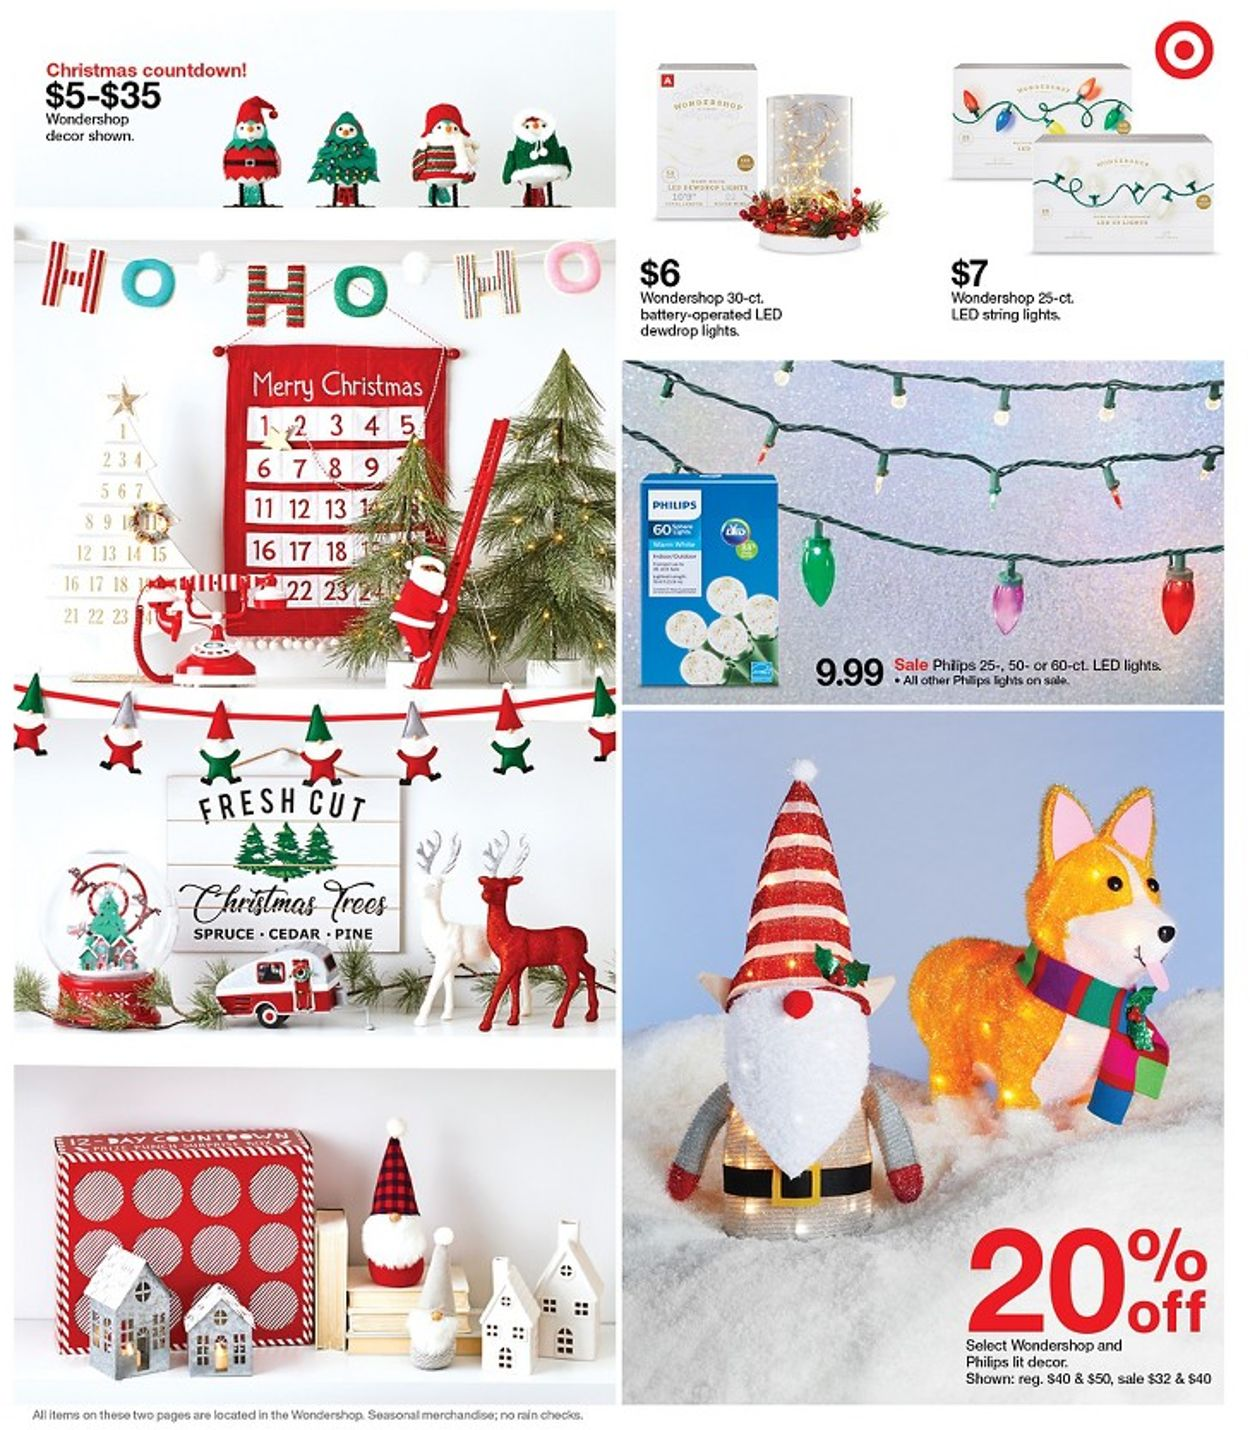 Jayc Foods Christmas Countdown 2020 Target Current weekly ad 11/17   11/23/2019 [11]   frequent ads.com